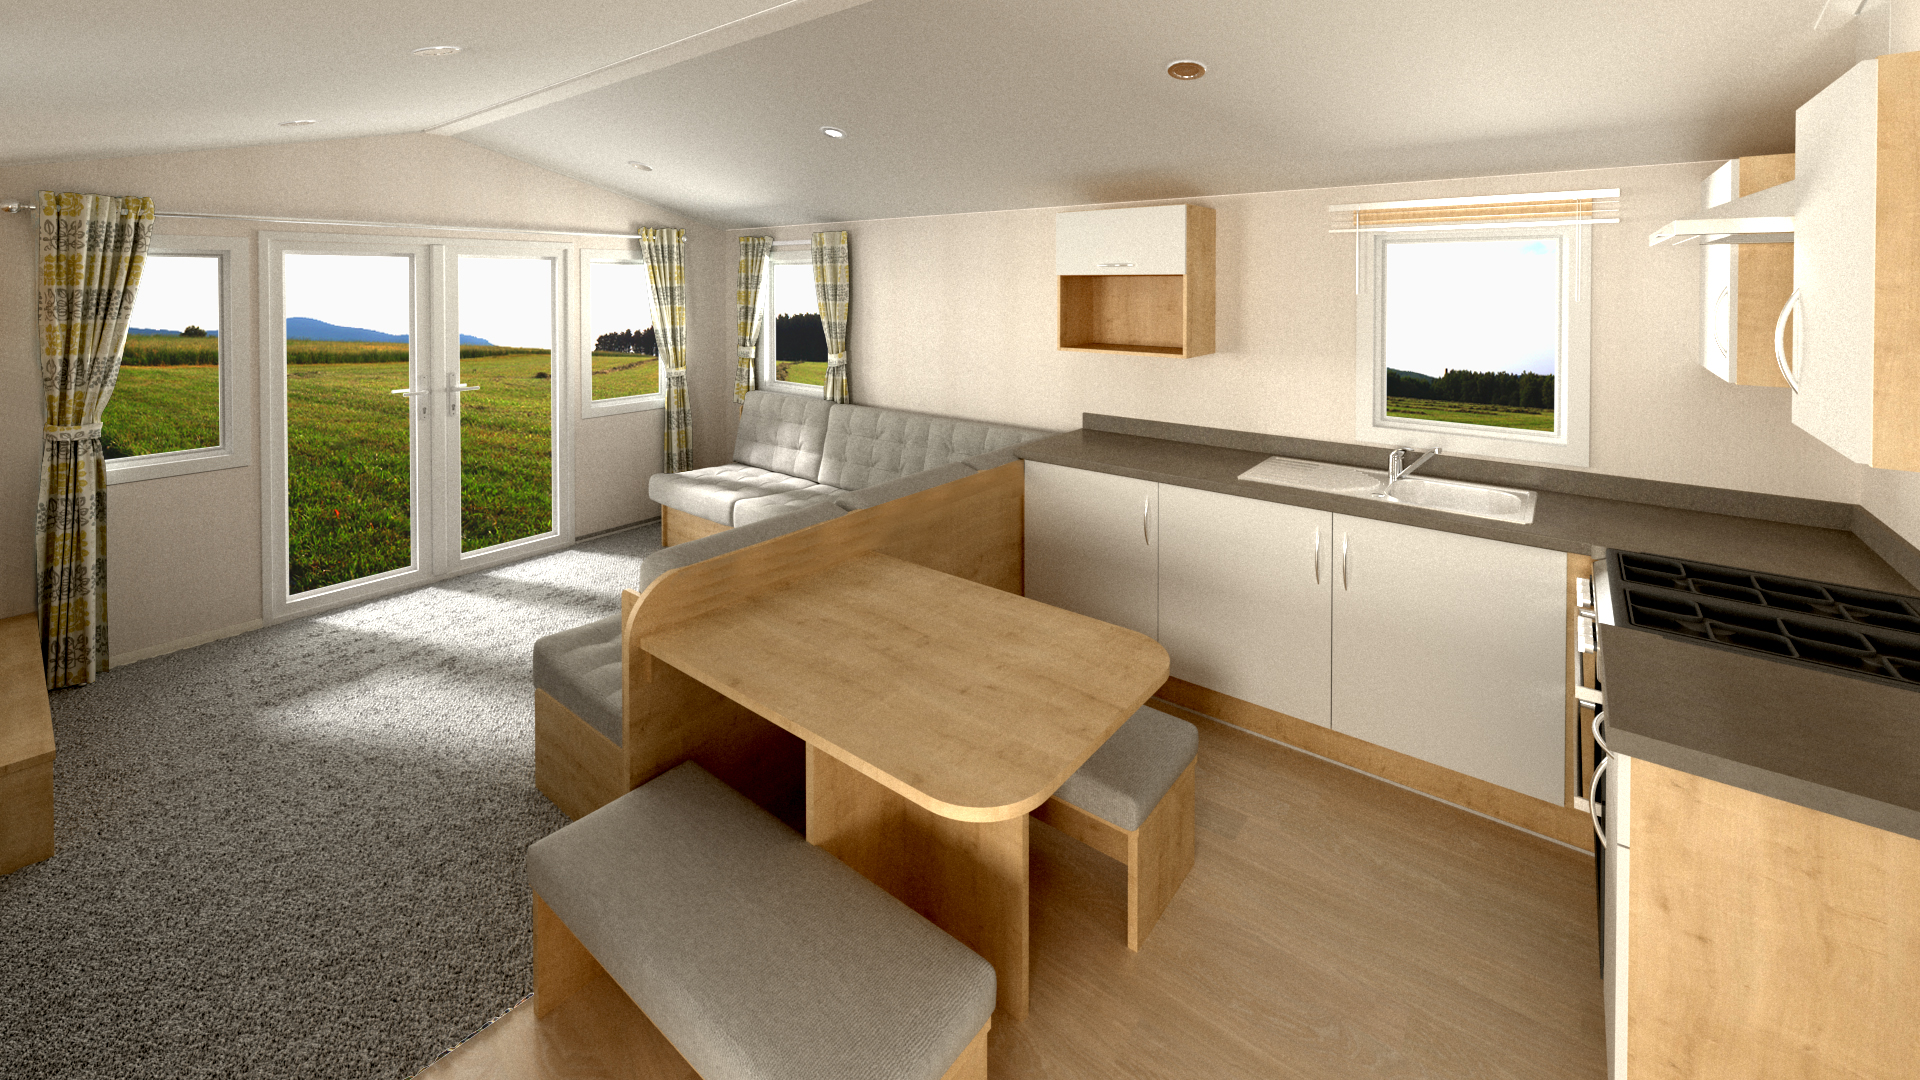 Willerby Grasmere - 3 Bedrooms: New Static Caravans and Holiday Homes for Sale, Clifton, Morpeth Large Image 1